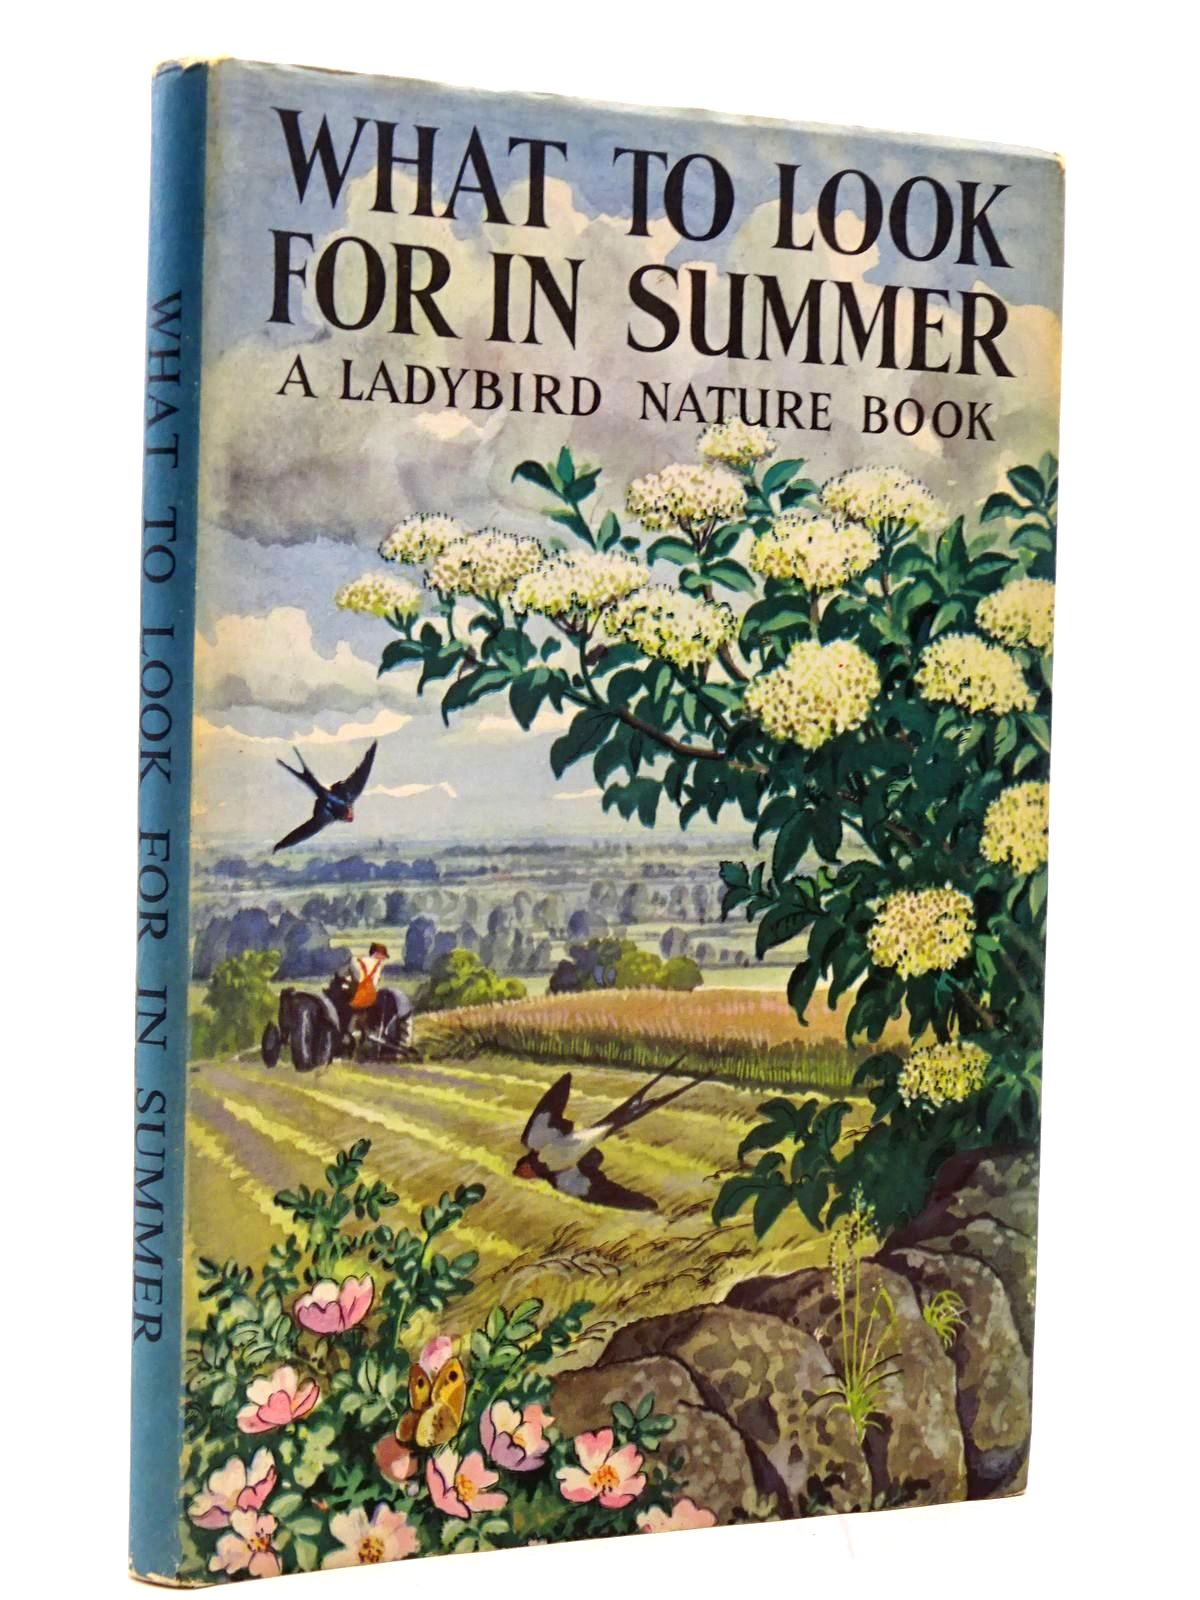 Photo of WHAT TO LOOK FOR IN SUMMER written by Watson, E.L. Grant illustrated by Tunnicliffe, C.F. published by Wills & Hepworth Ltd. (STOCK CODE: 2130393)  for sale by Stella & Rose's Books